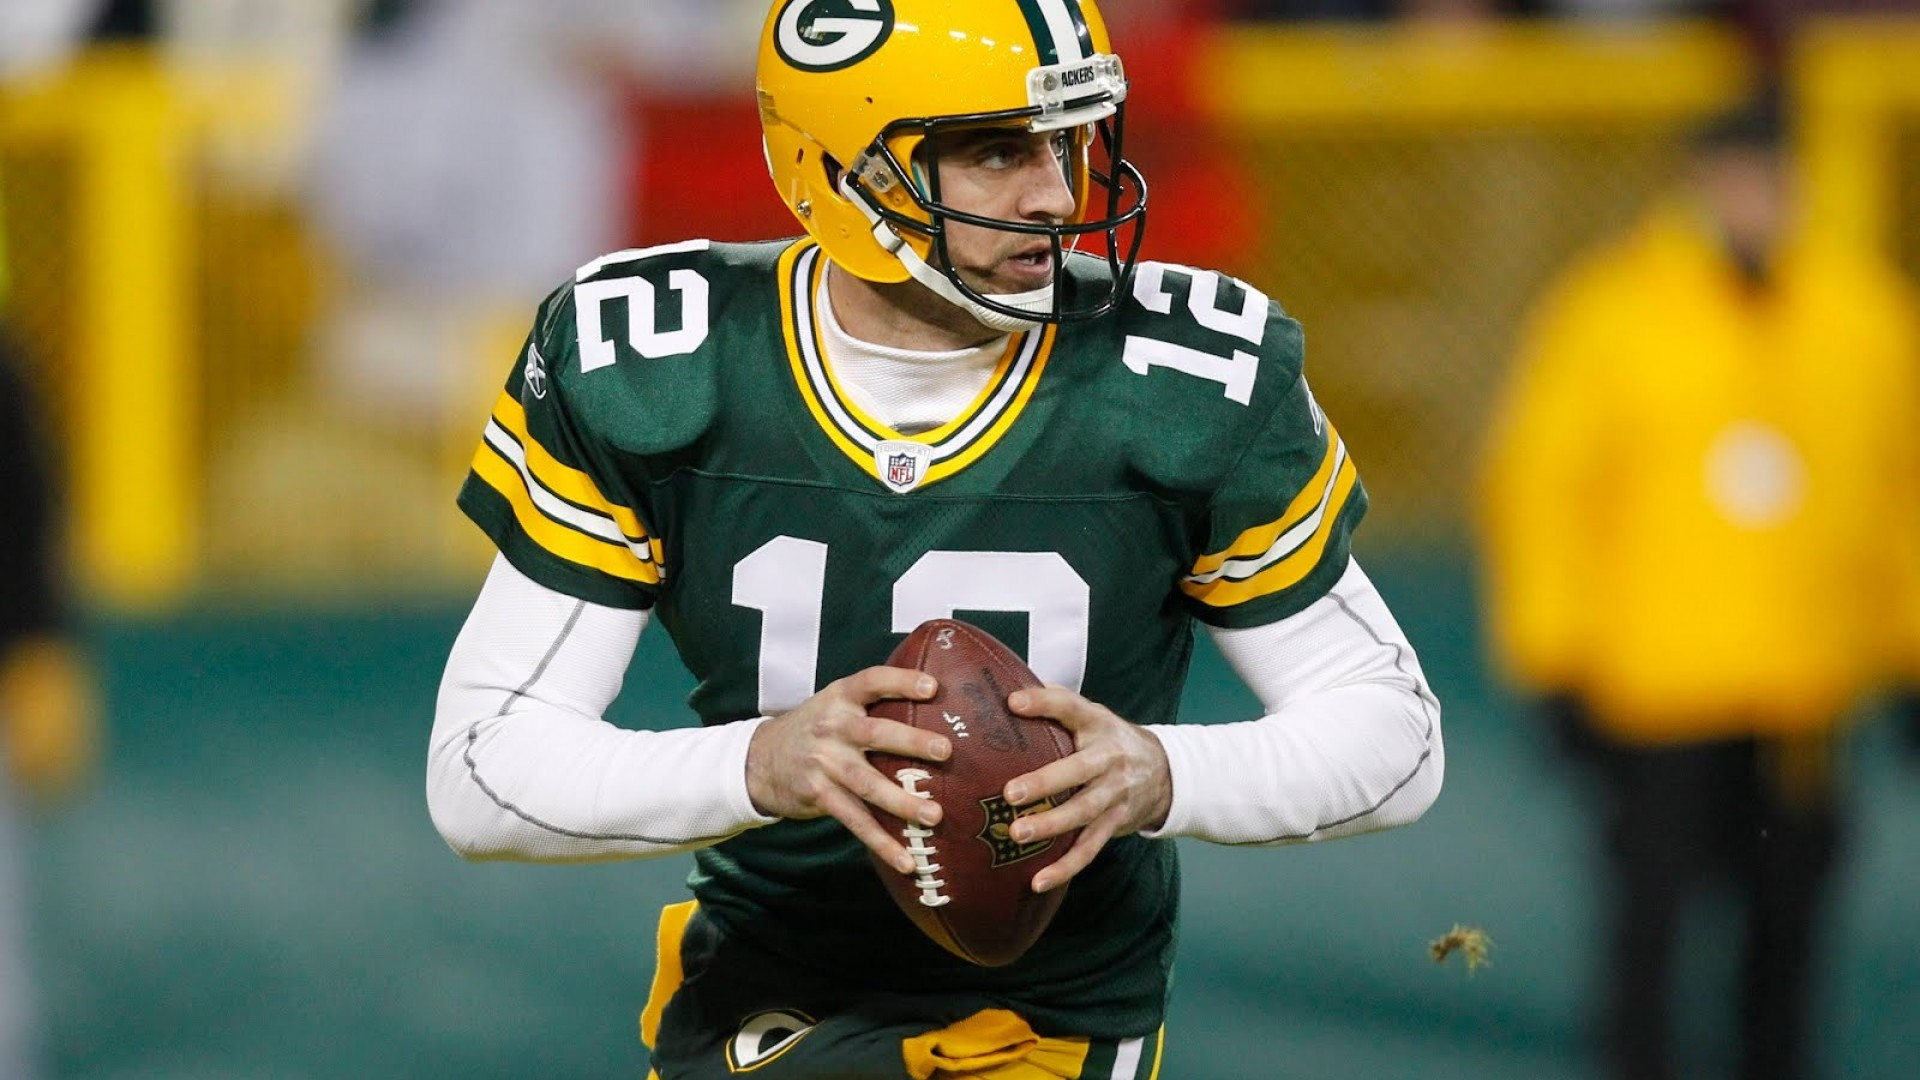 aaron rodgers 2014 wallpaper high definition high